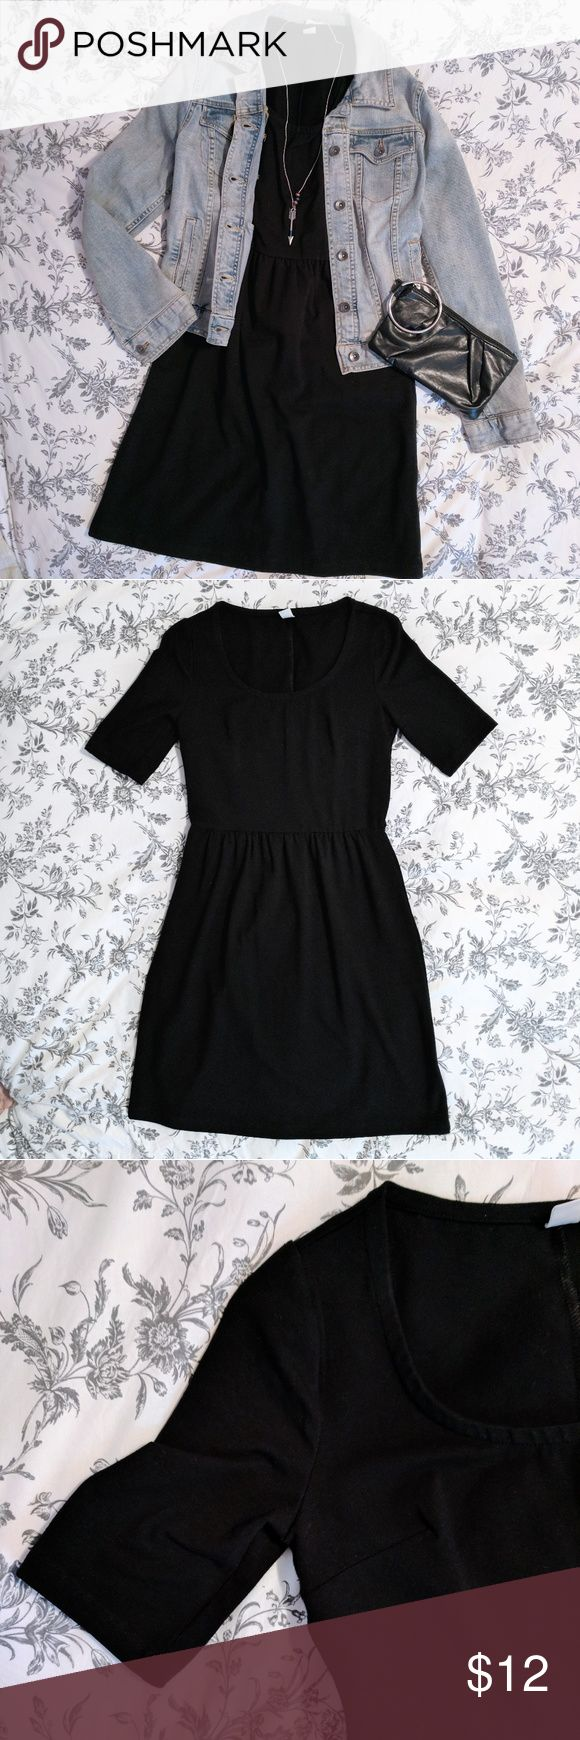 Old Navy Fitted Flare Dress Old Navy fitted flare dress with 3/4 sleeves. Dress is synched at the waist to give a natural hour glass shape. It features a boat neck line and falls above the knee. Only worn once and in great condition. Dress is great for fall and goes great with layers! Offers are welcome. No trades please. **NOTE: denim jacket and accessories are not for sale** Old Navy Dresses Midi